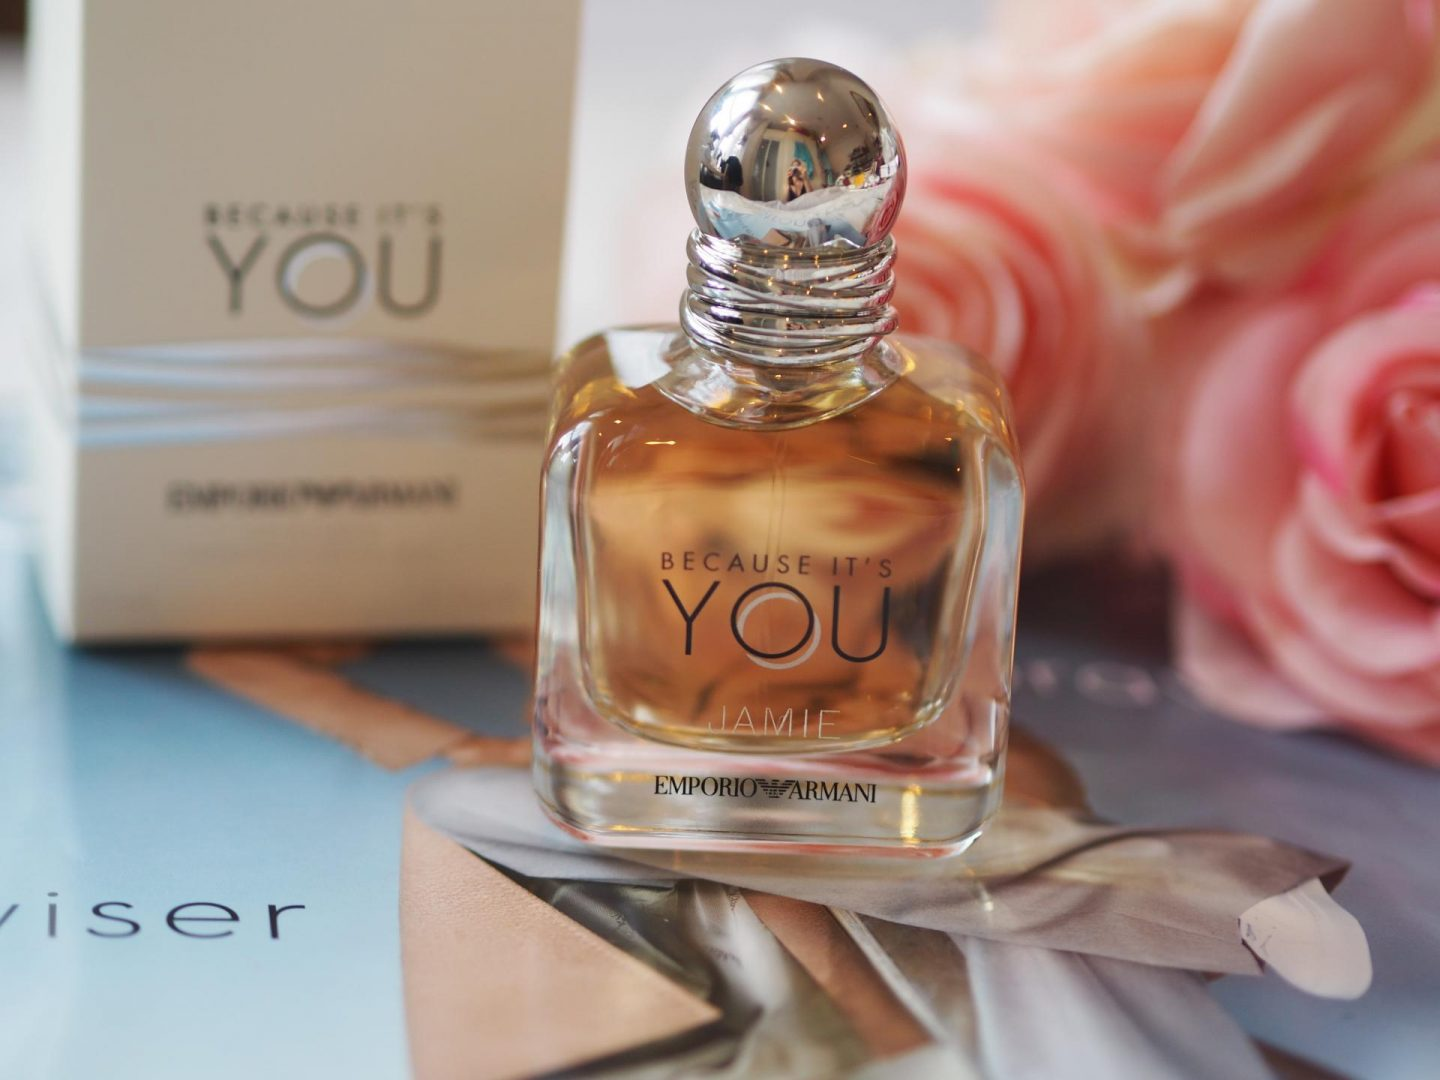 Feel Good Beauty - Product: Emporio Armani Because It's You Eau De Parfum